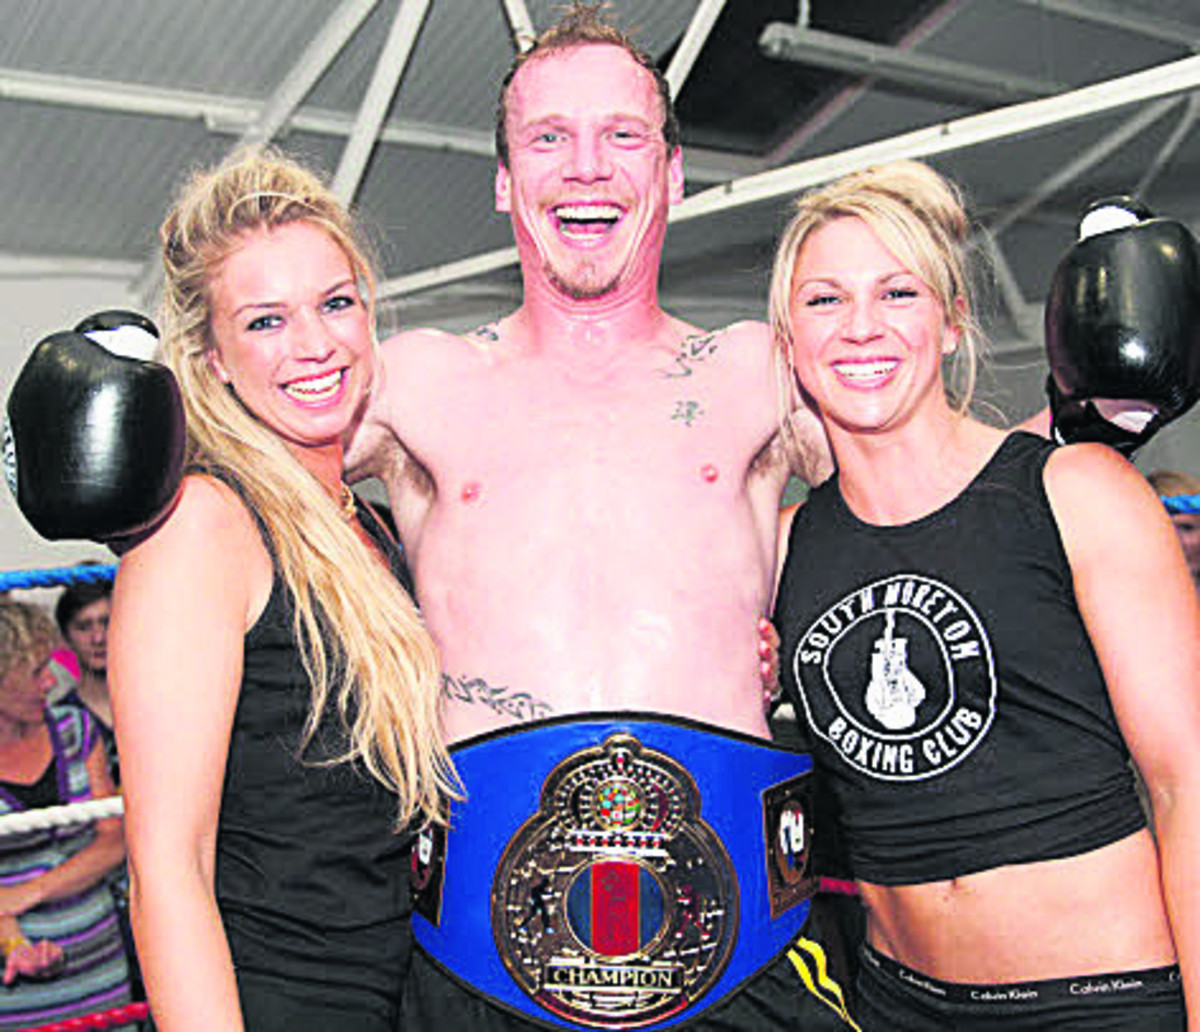 Amateur boxer Christian Sinkinson, from Wallingford, pictured with ring girls Hannah Benson and Kat Clark at the event